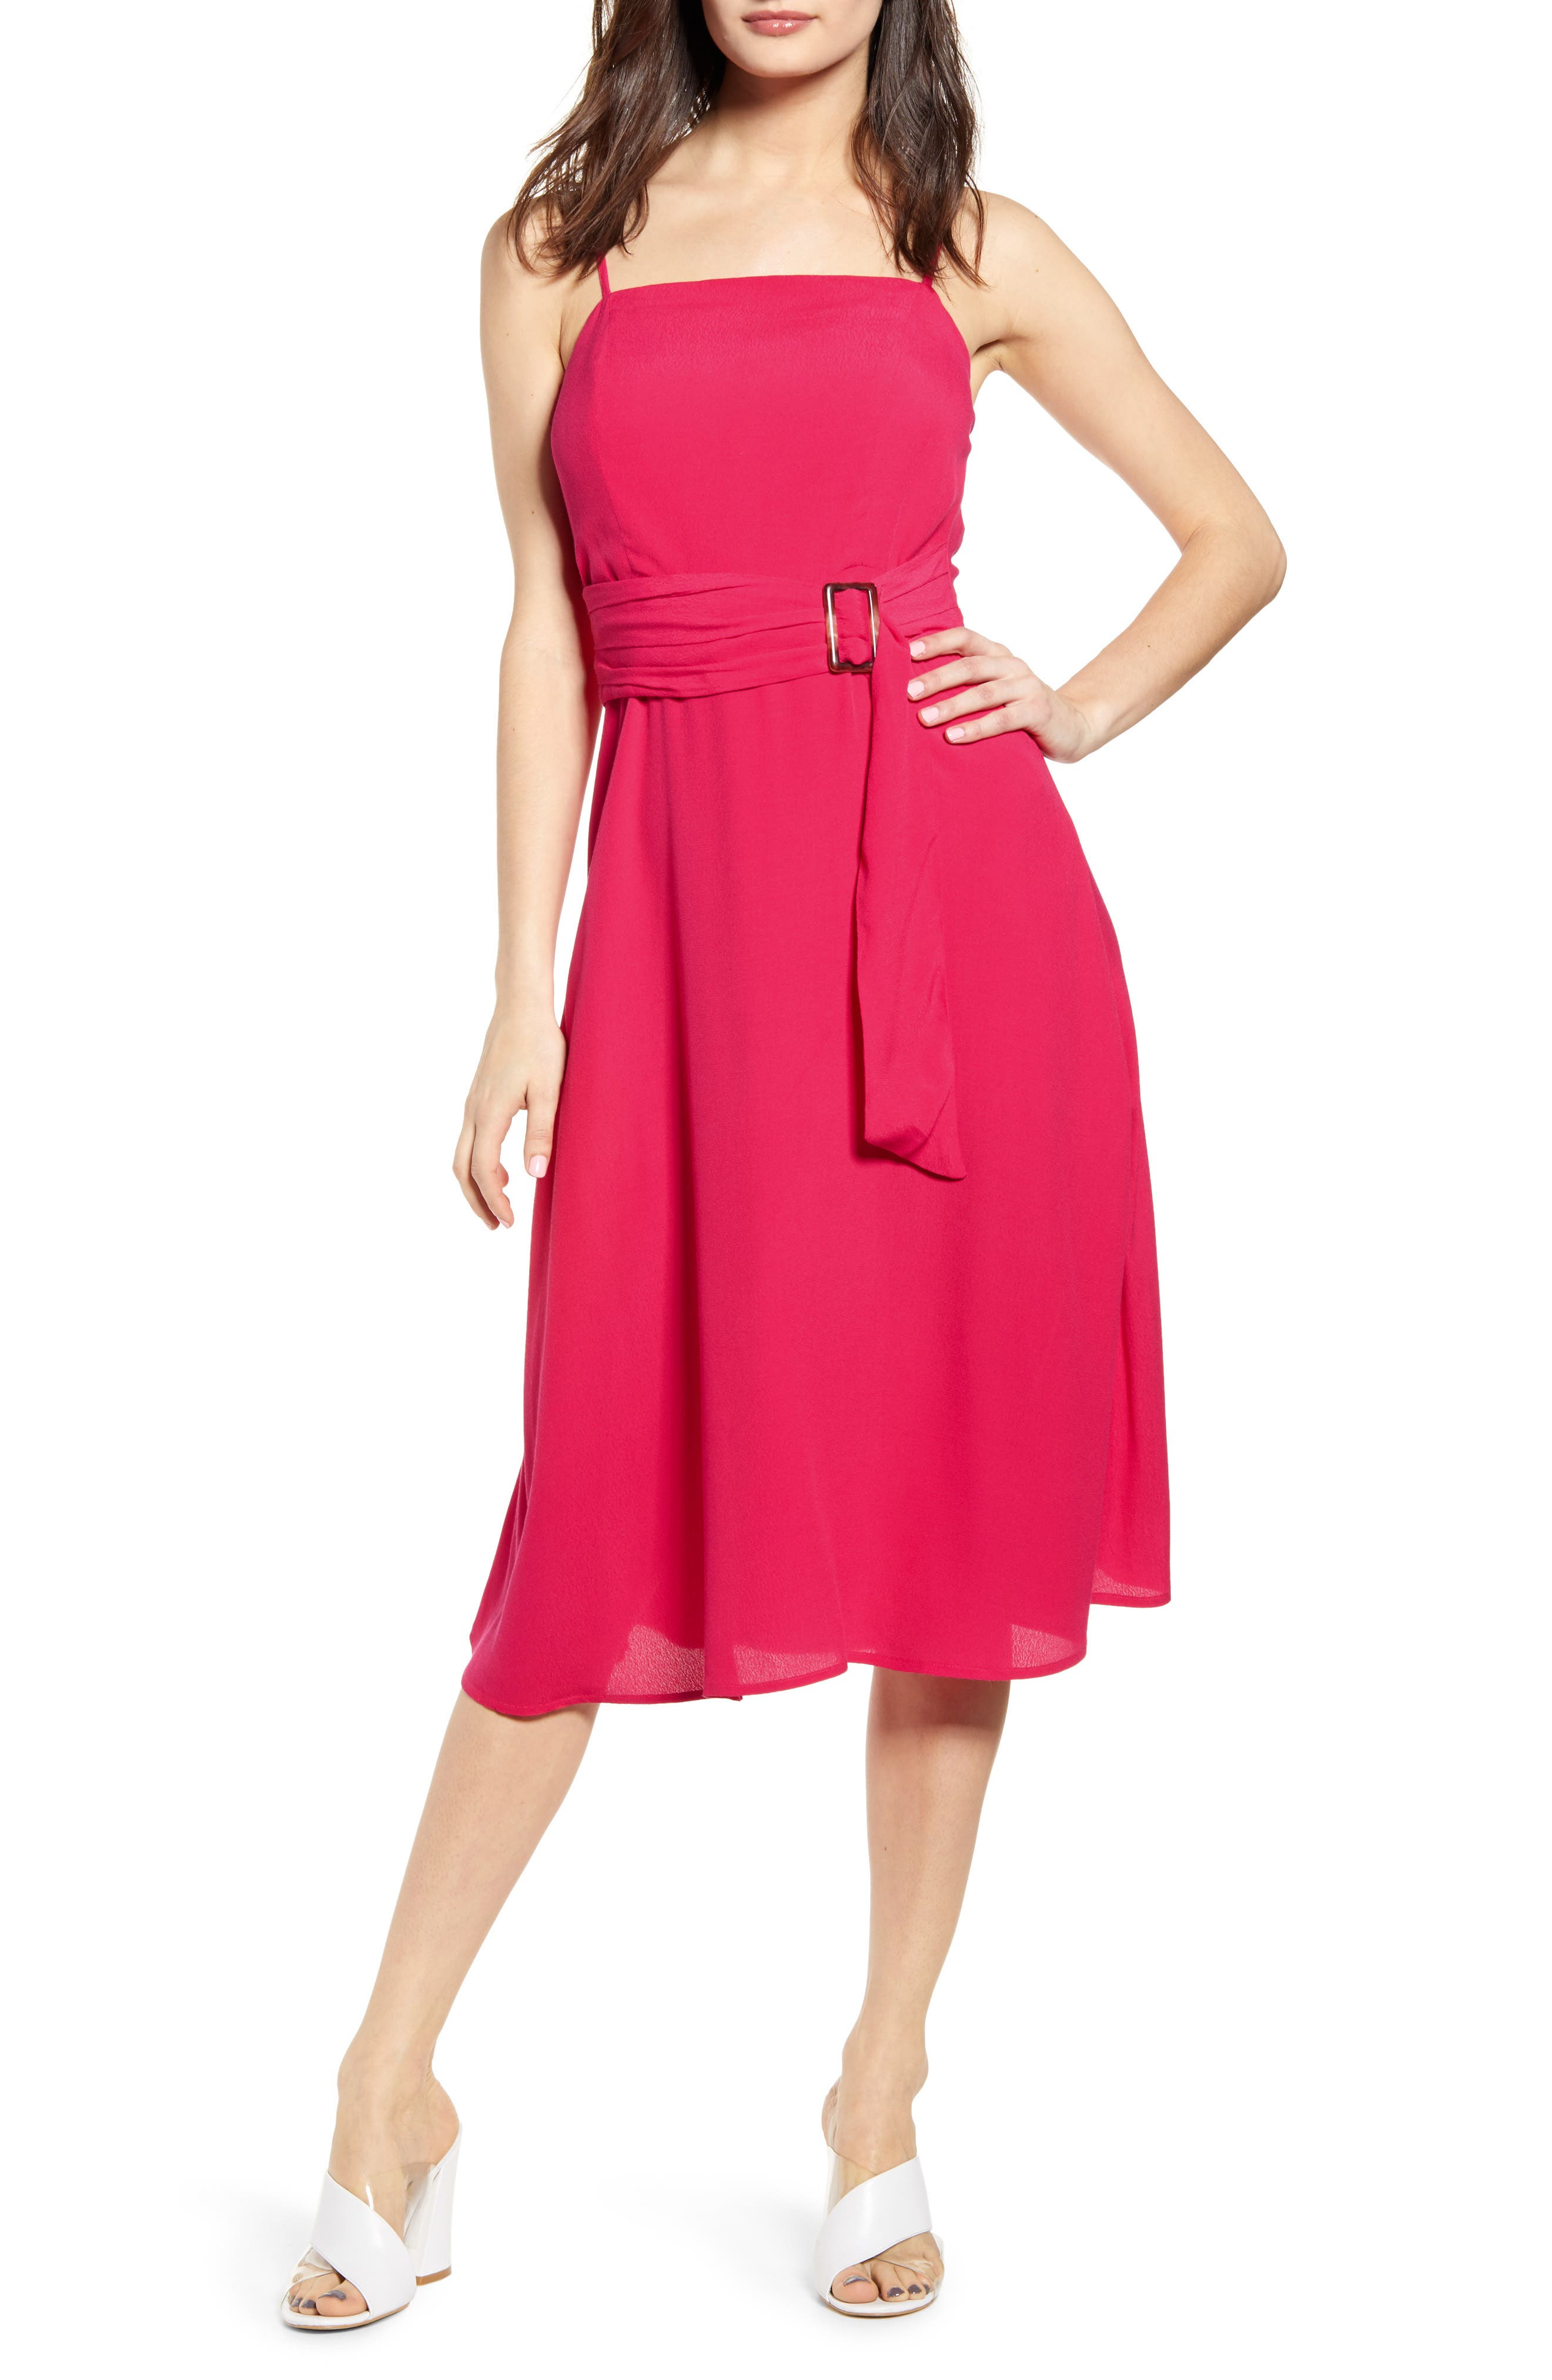 J.o.a. Belted Sleeveless Dress, Pink